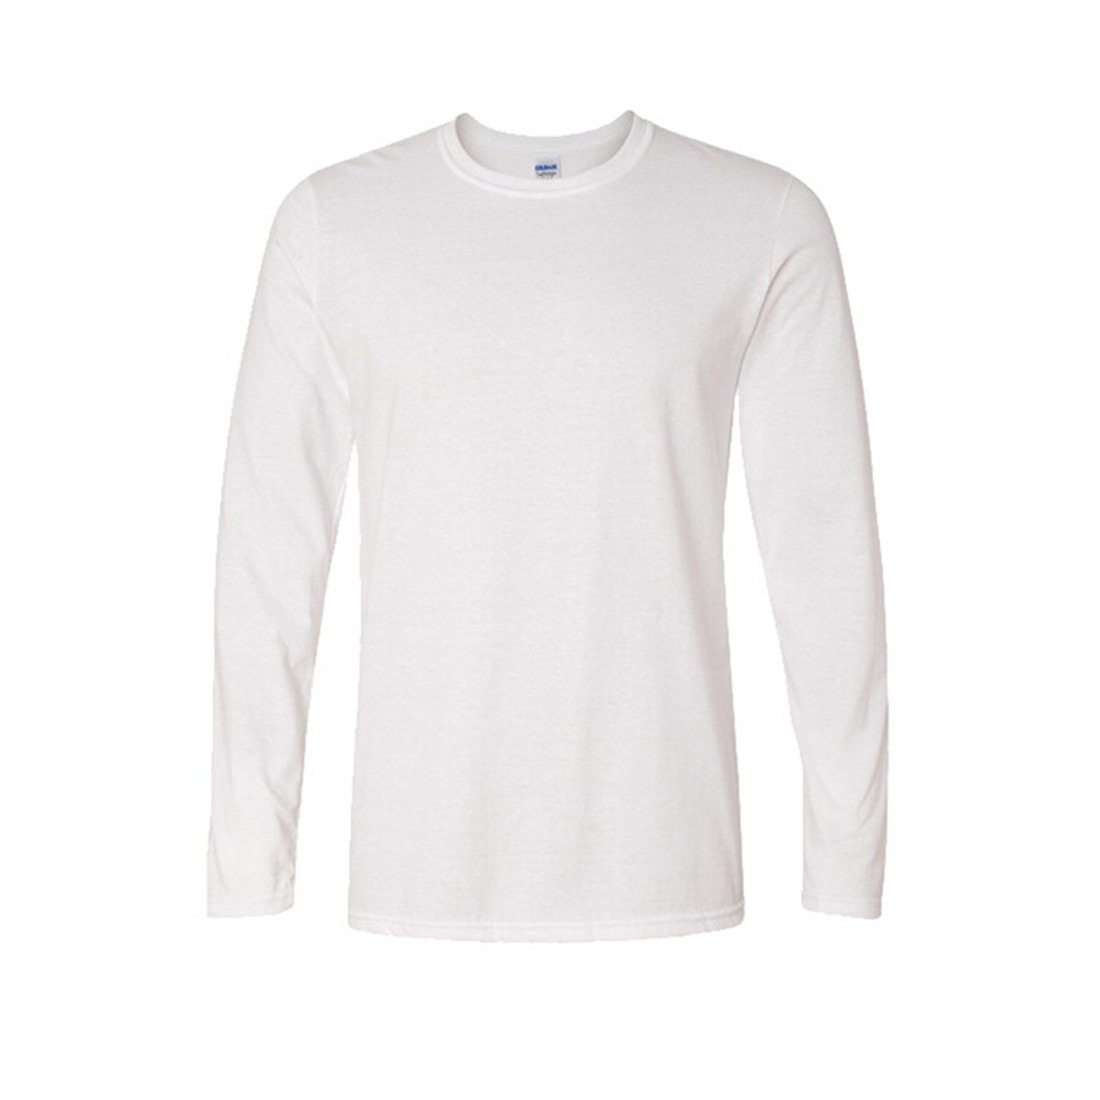 Basic Fashion Cool Solid White Cotton Mens Long Sleeve